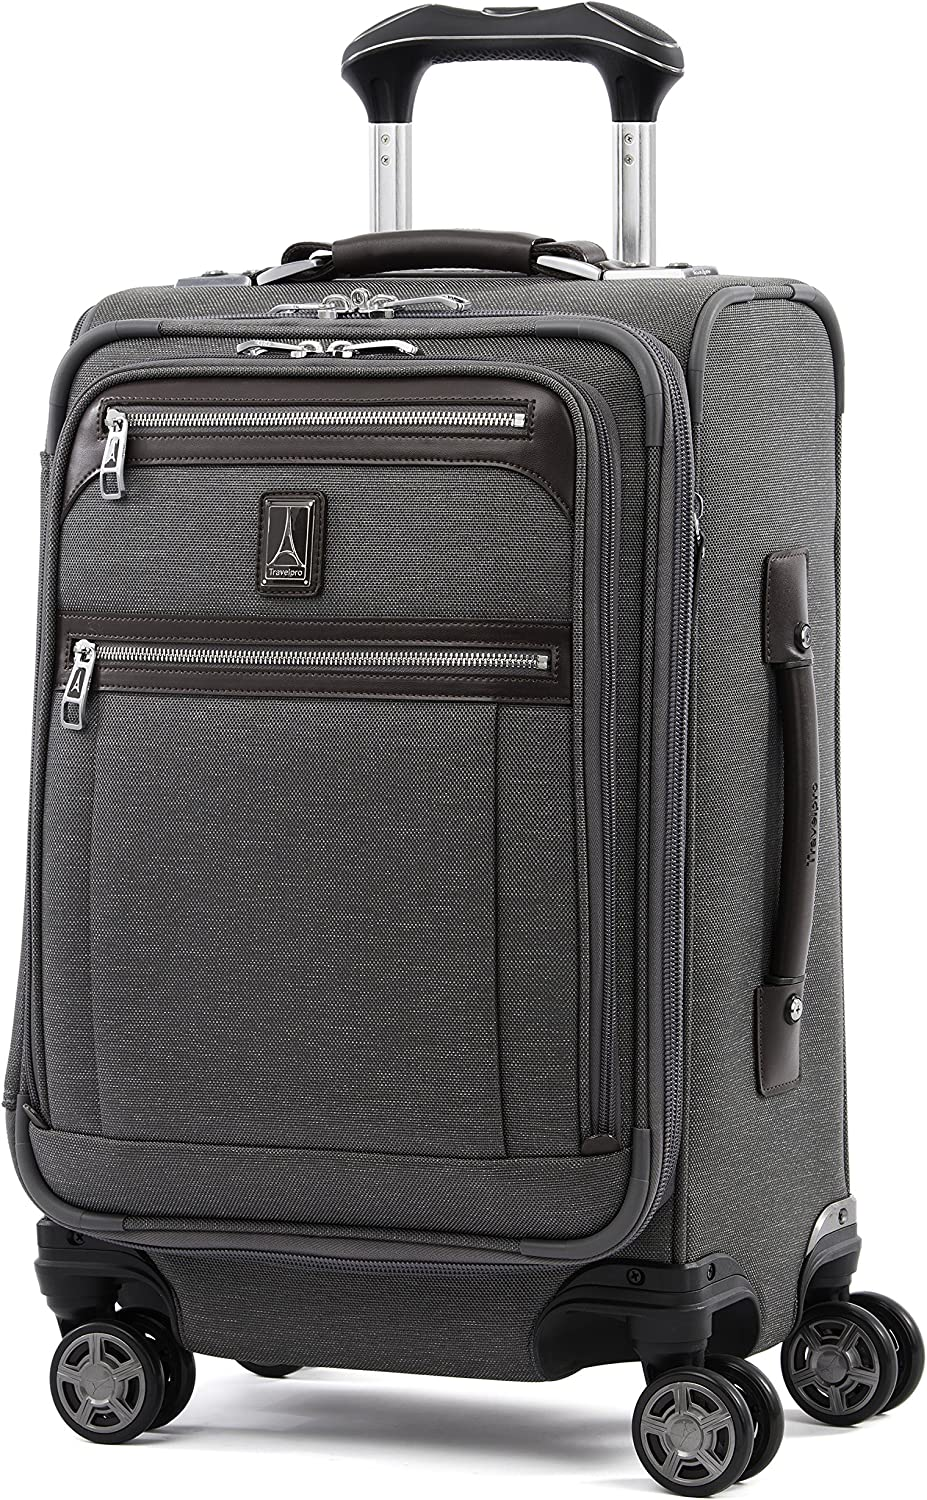 Travelpro Platinum Elite-Business Plus Softside Expandable Luggage, Vintage Grey, Carry-On 20-Inch